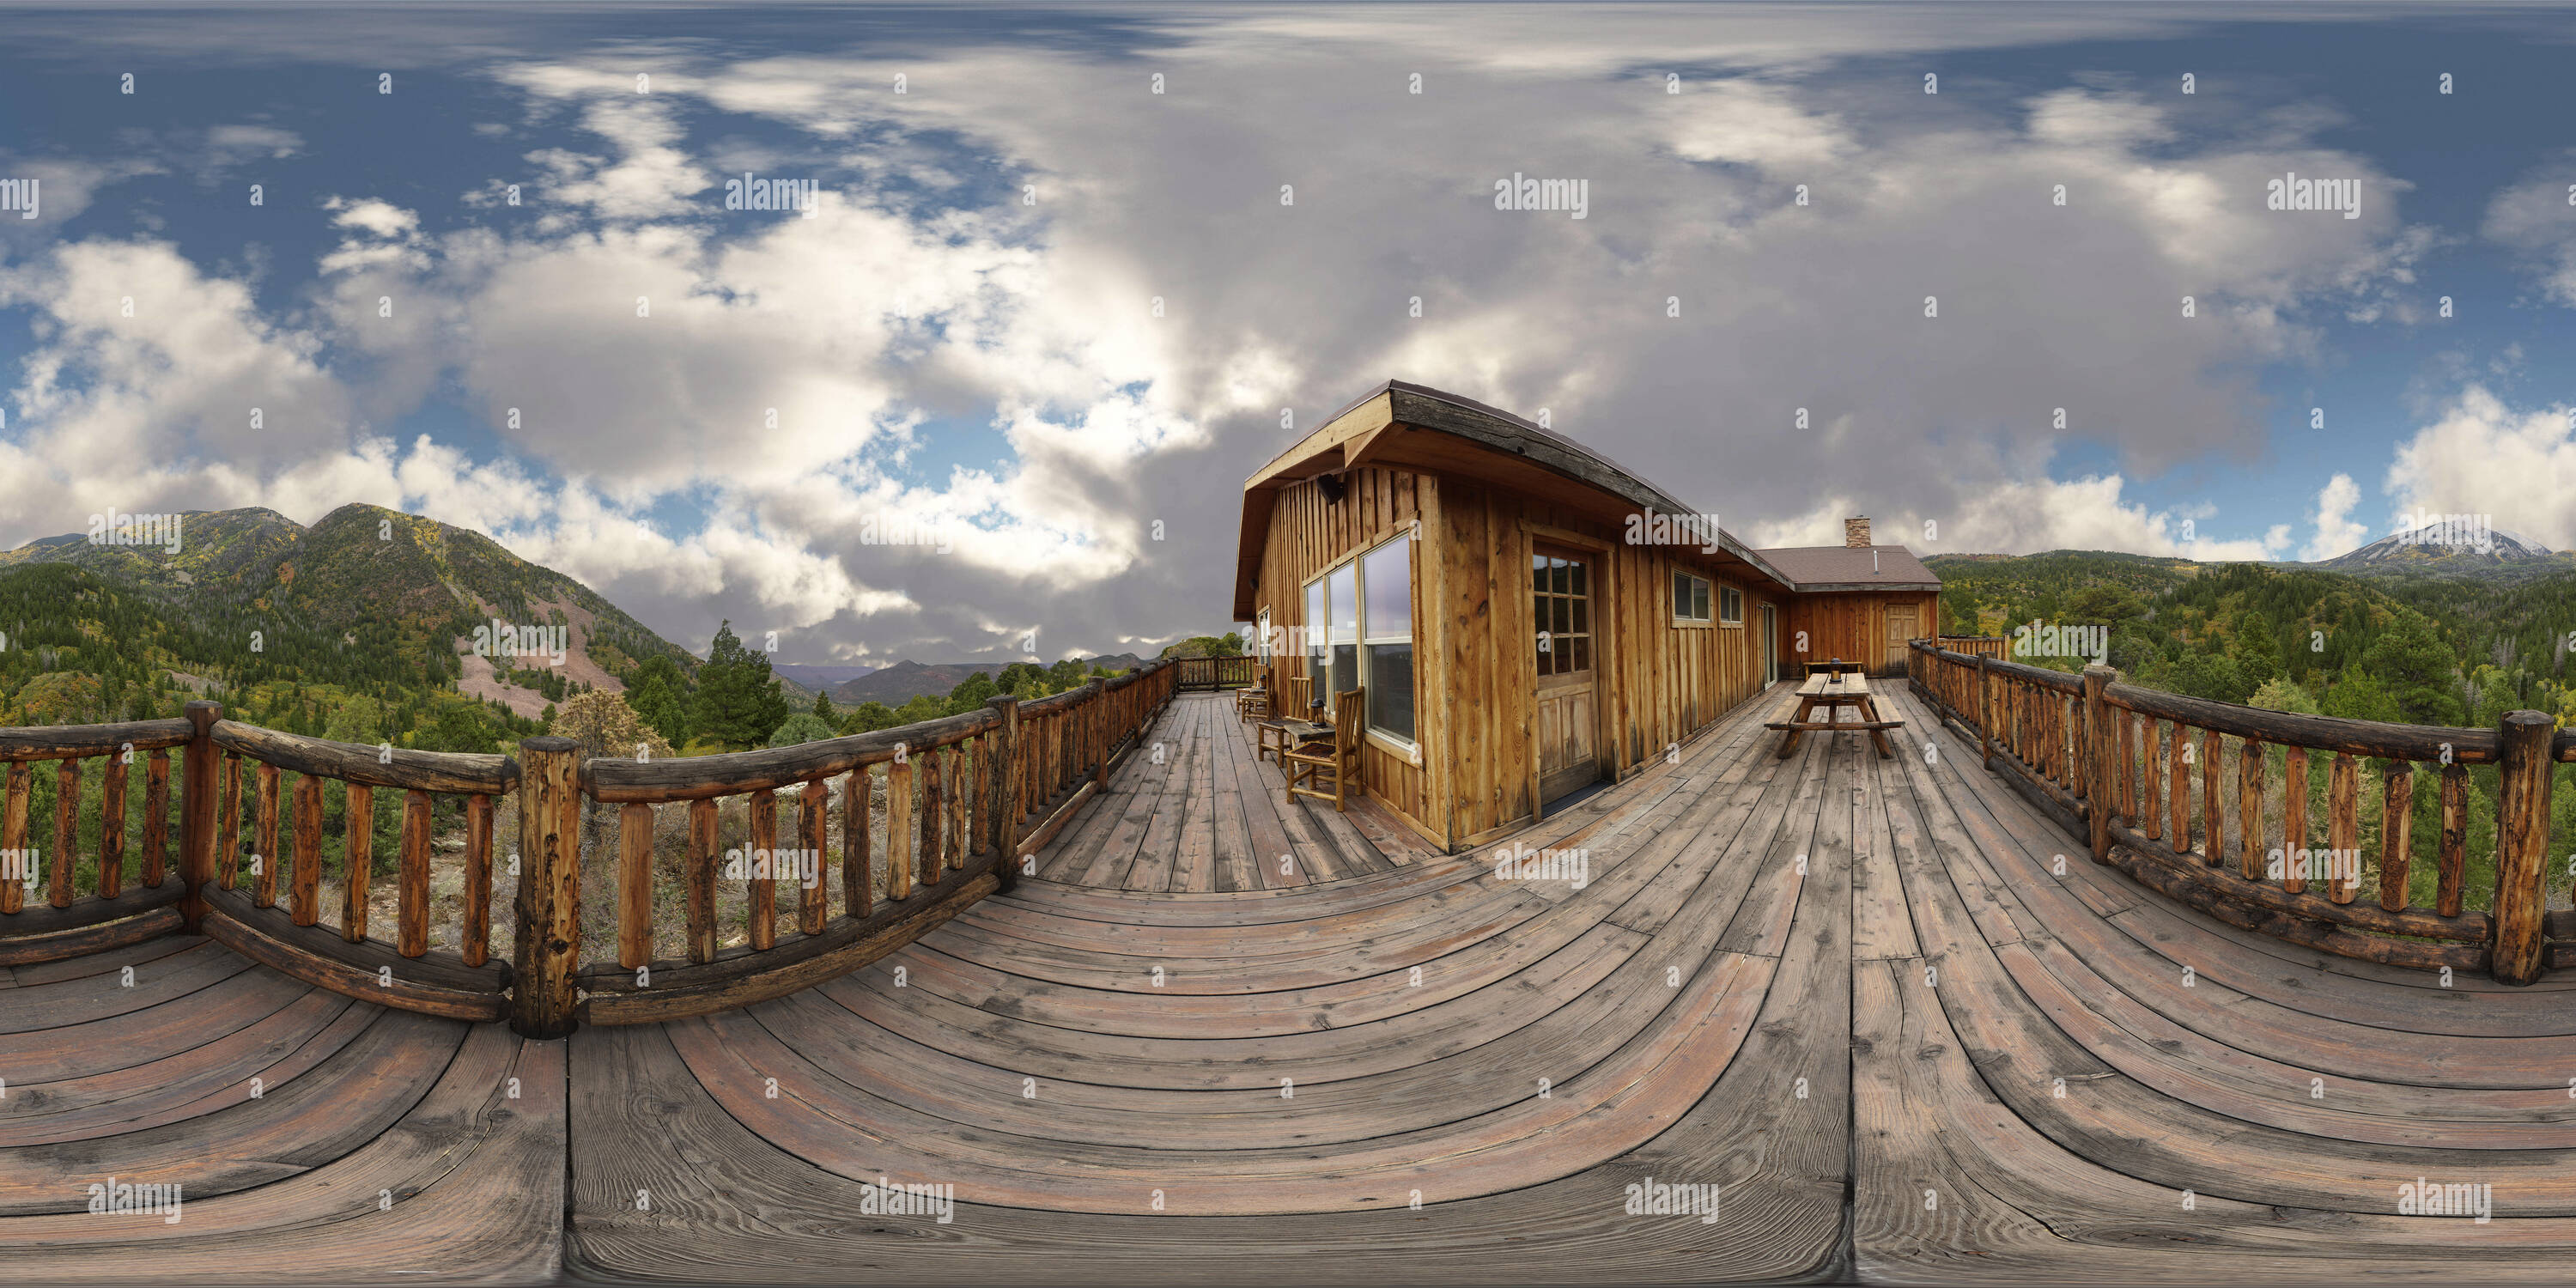 360 View of VR 360 Spherical Panorama of from the porch of a remote